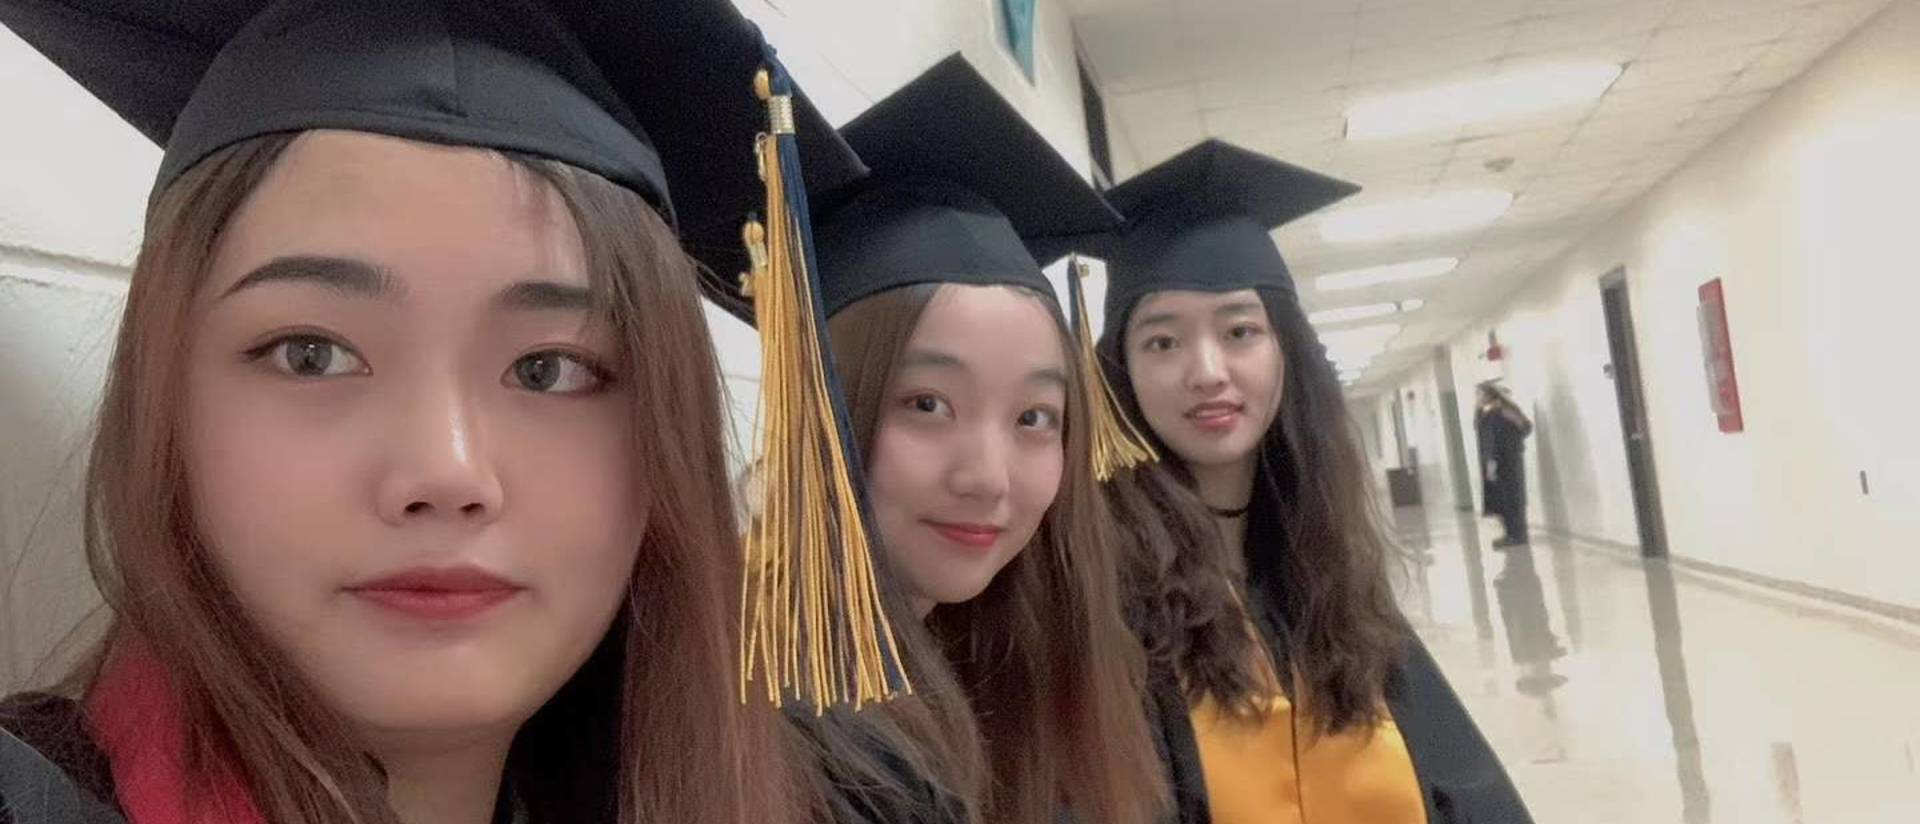 Changshu Institute of Technology graduates, from left, are Ruiyu Li, Yumeng Zhou and Hongyu Zhao.